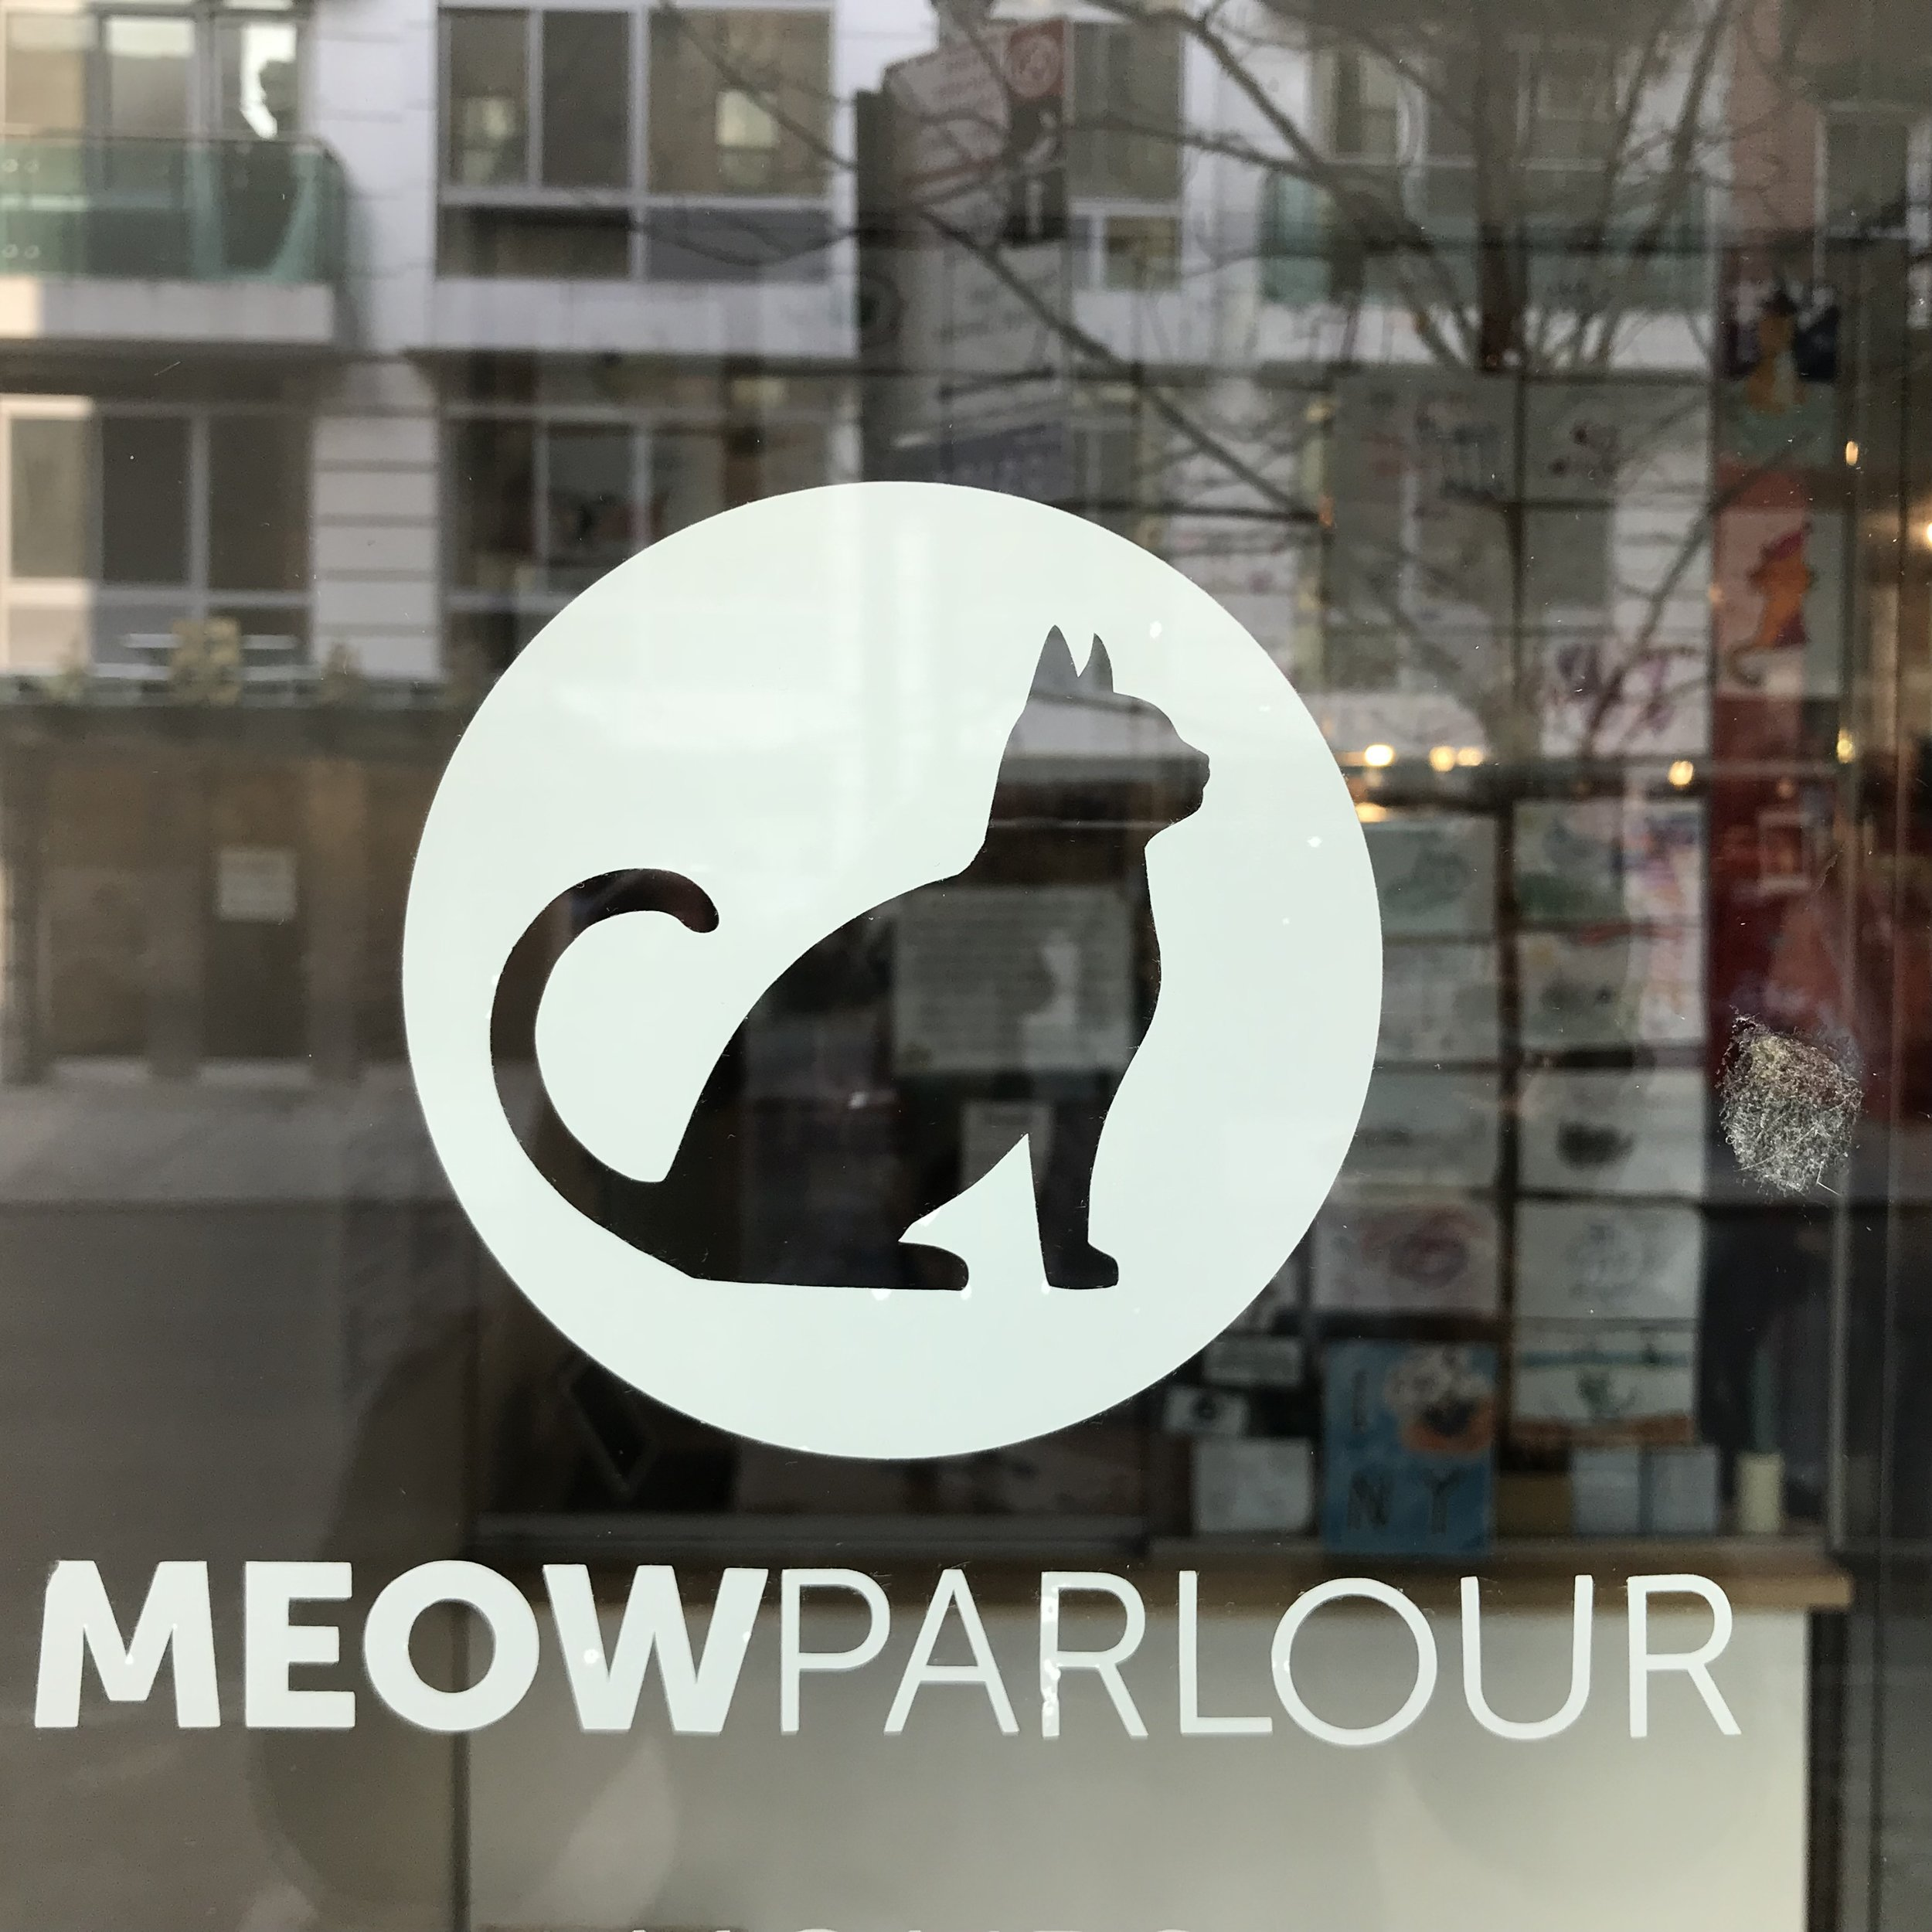 Meow Parlour   New York, NY, USA